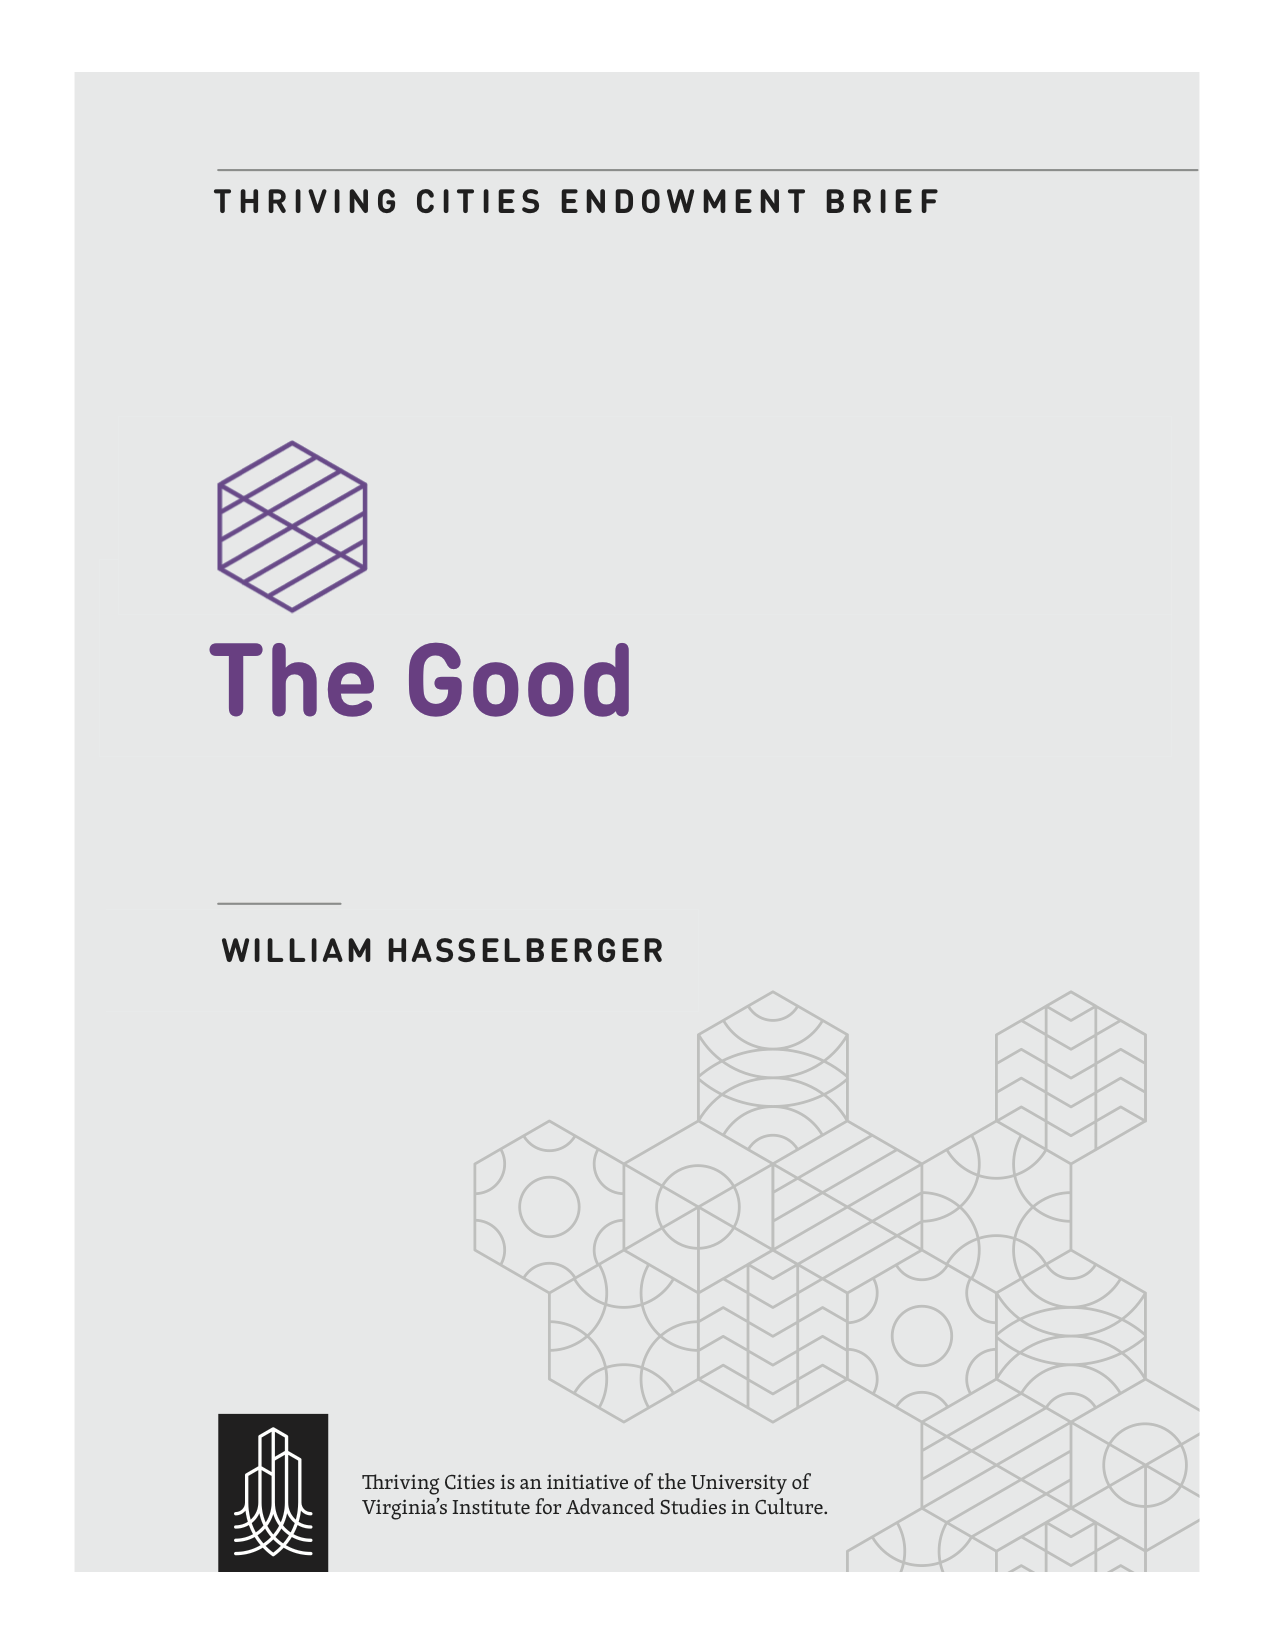 Endowment Brief on The Good - v.2 Hasselberger.png